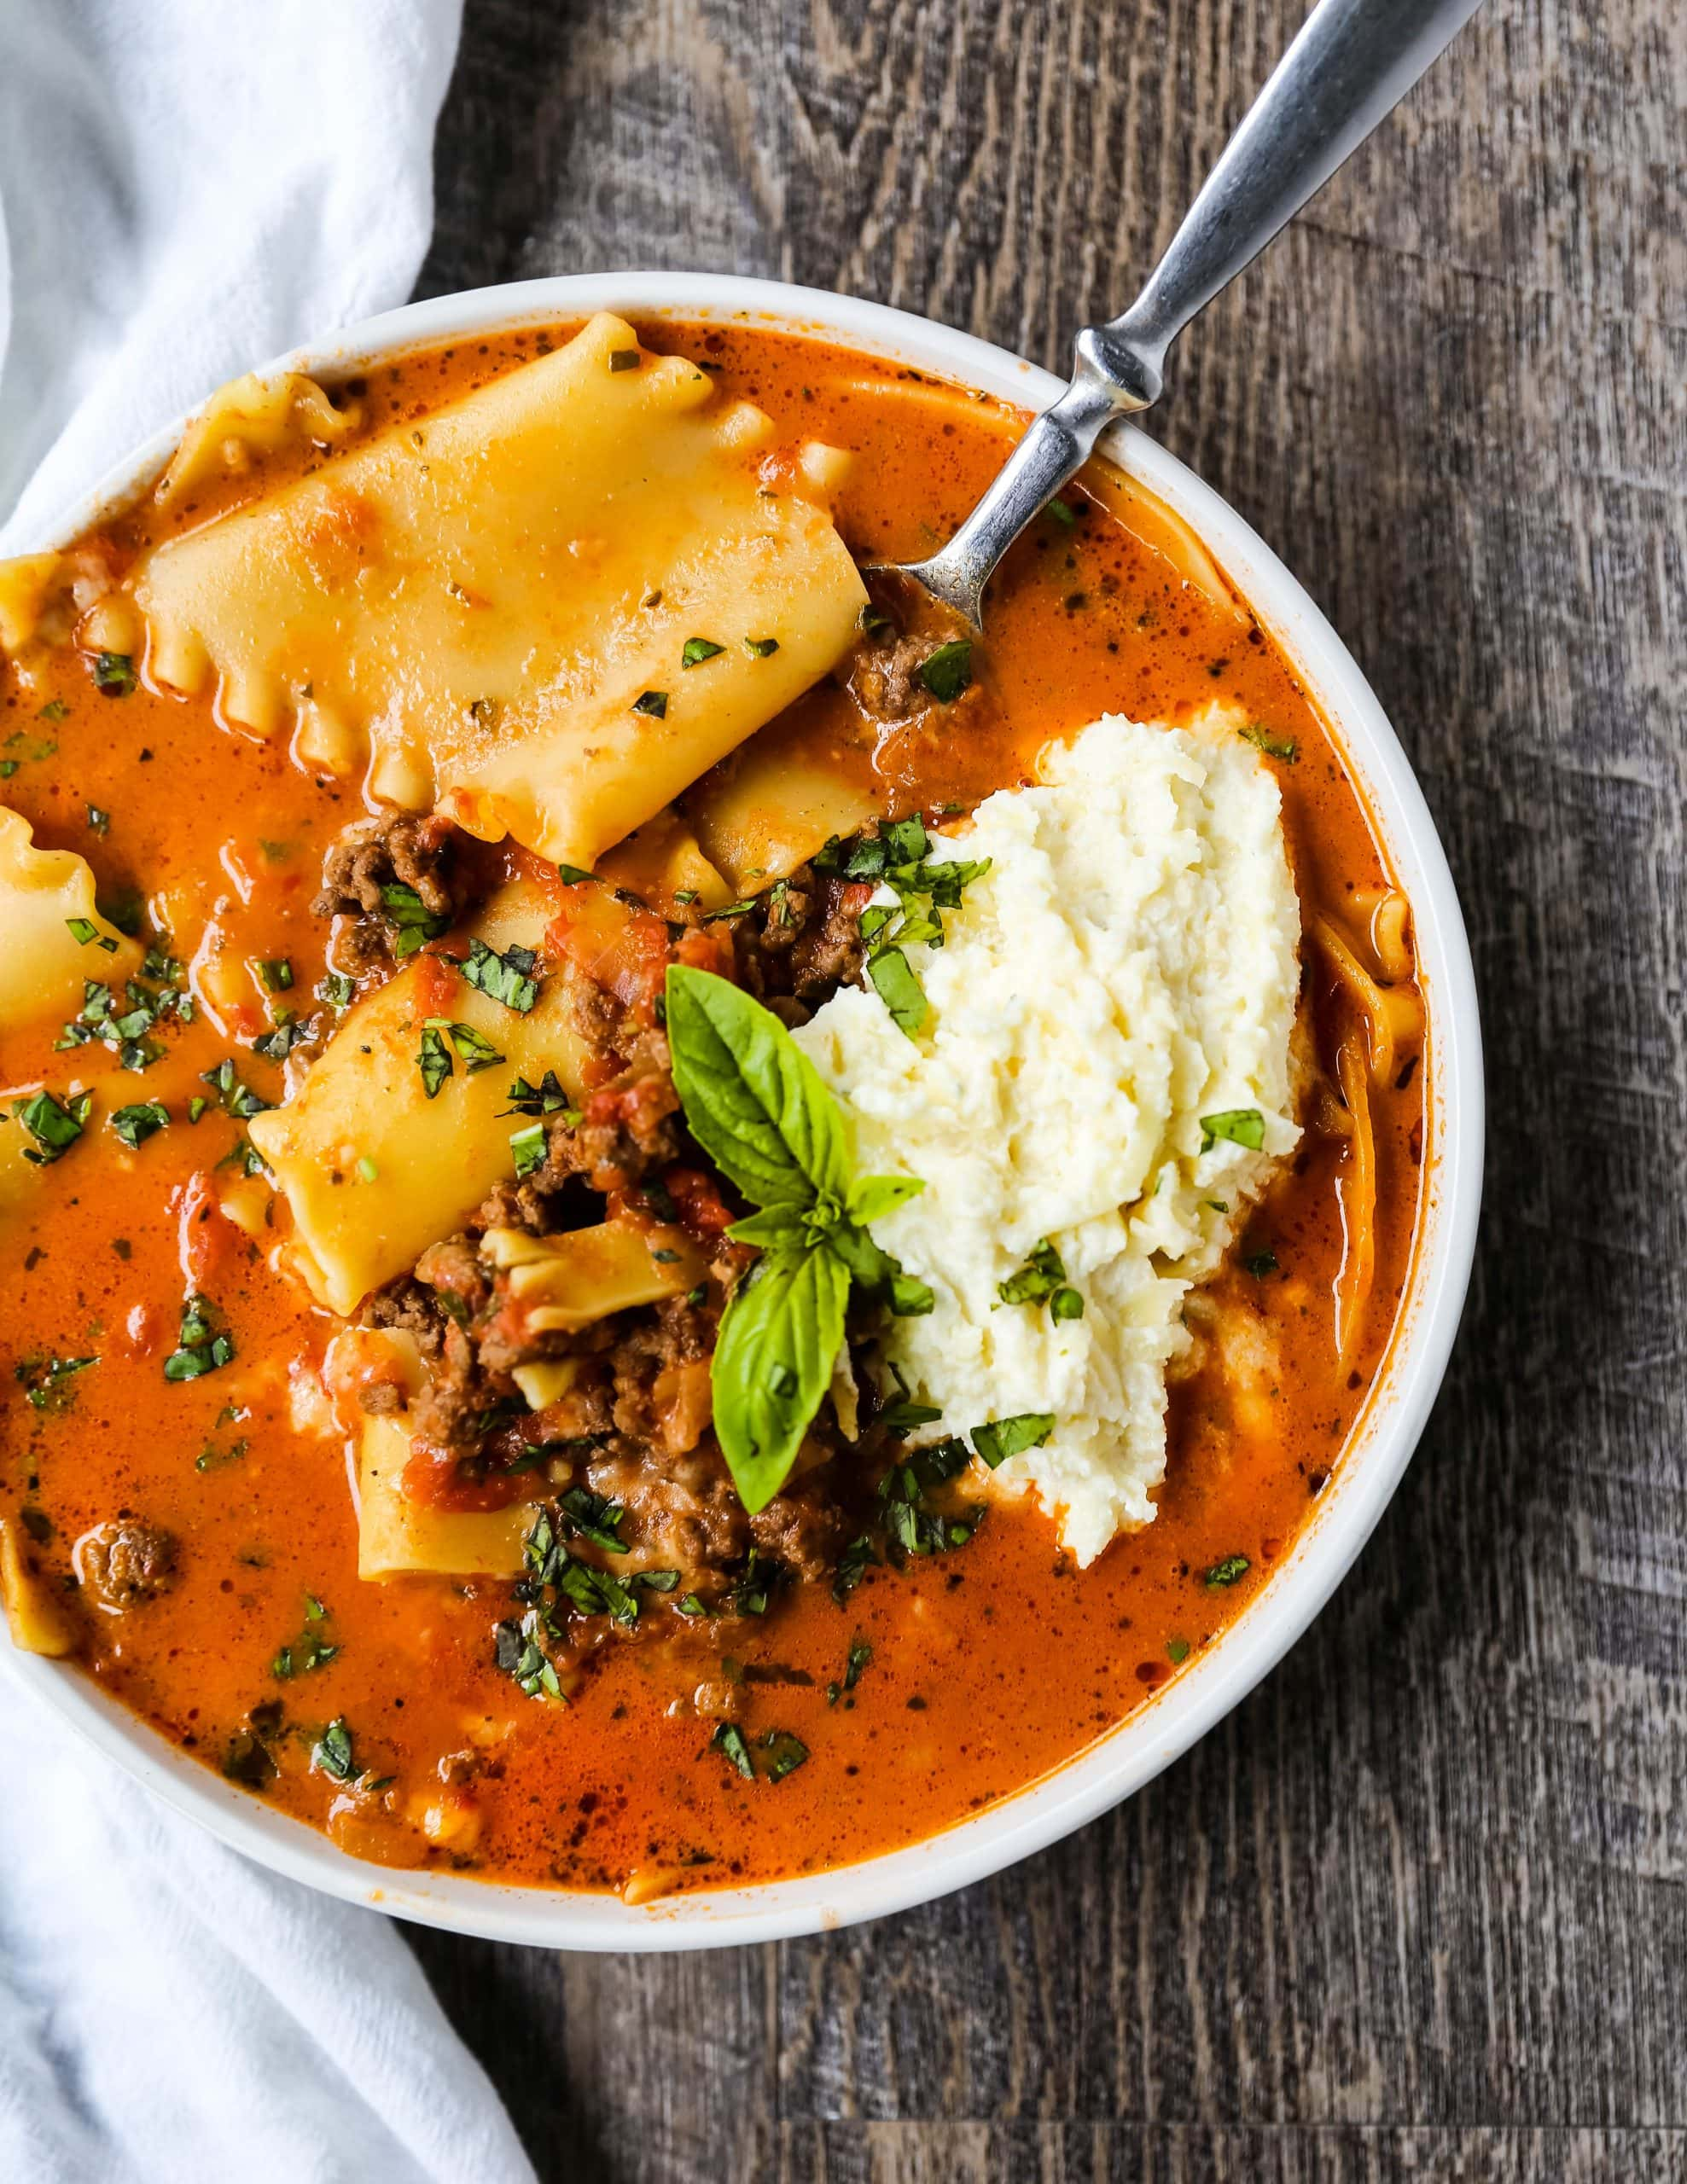 Lasagna Soup. A hearty beef lasagna soup with fresh ricotta cheese, mozzarella, and parmesan cheeses and fresh herbs. An Italian classic made into a comforting soup! #lasagnasoup #soup #soups #comfortfood